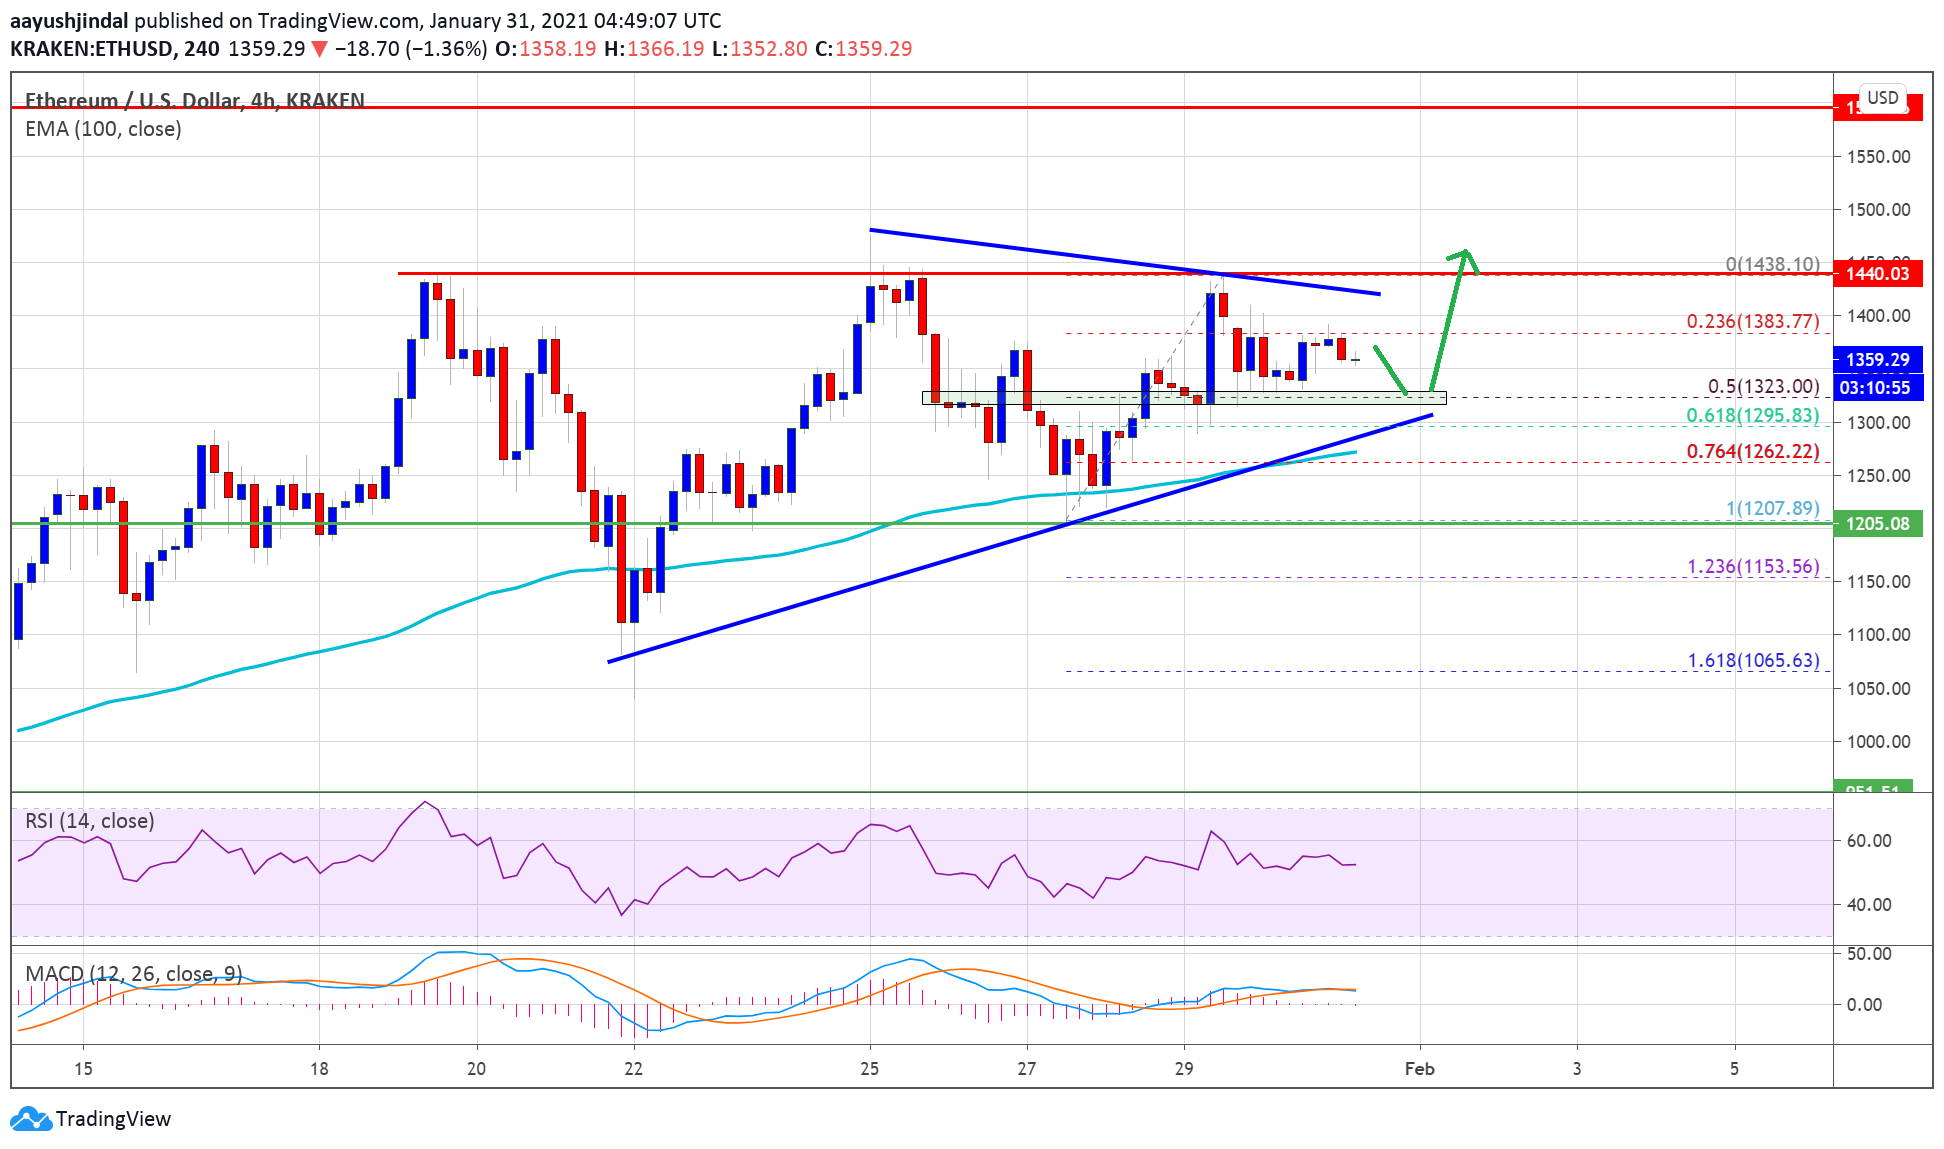 Ethereum Could Outperform Bitcoin, Why ETH Could Rally To $1,5002